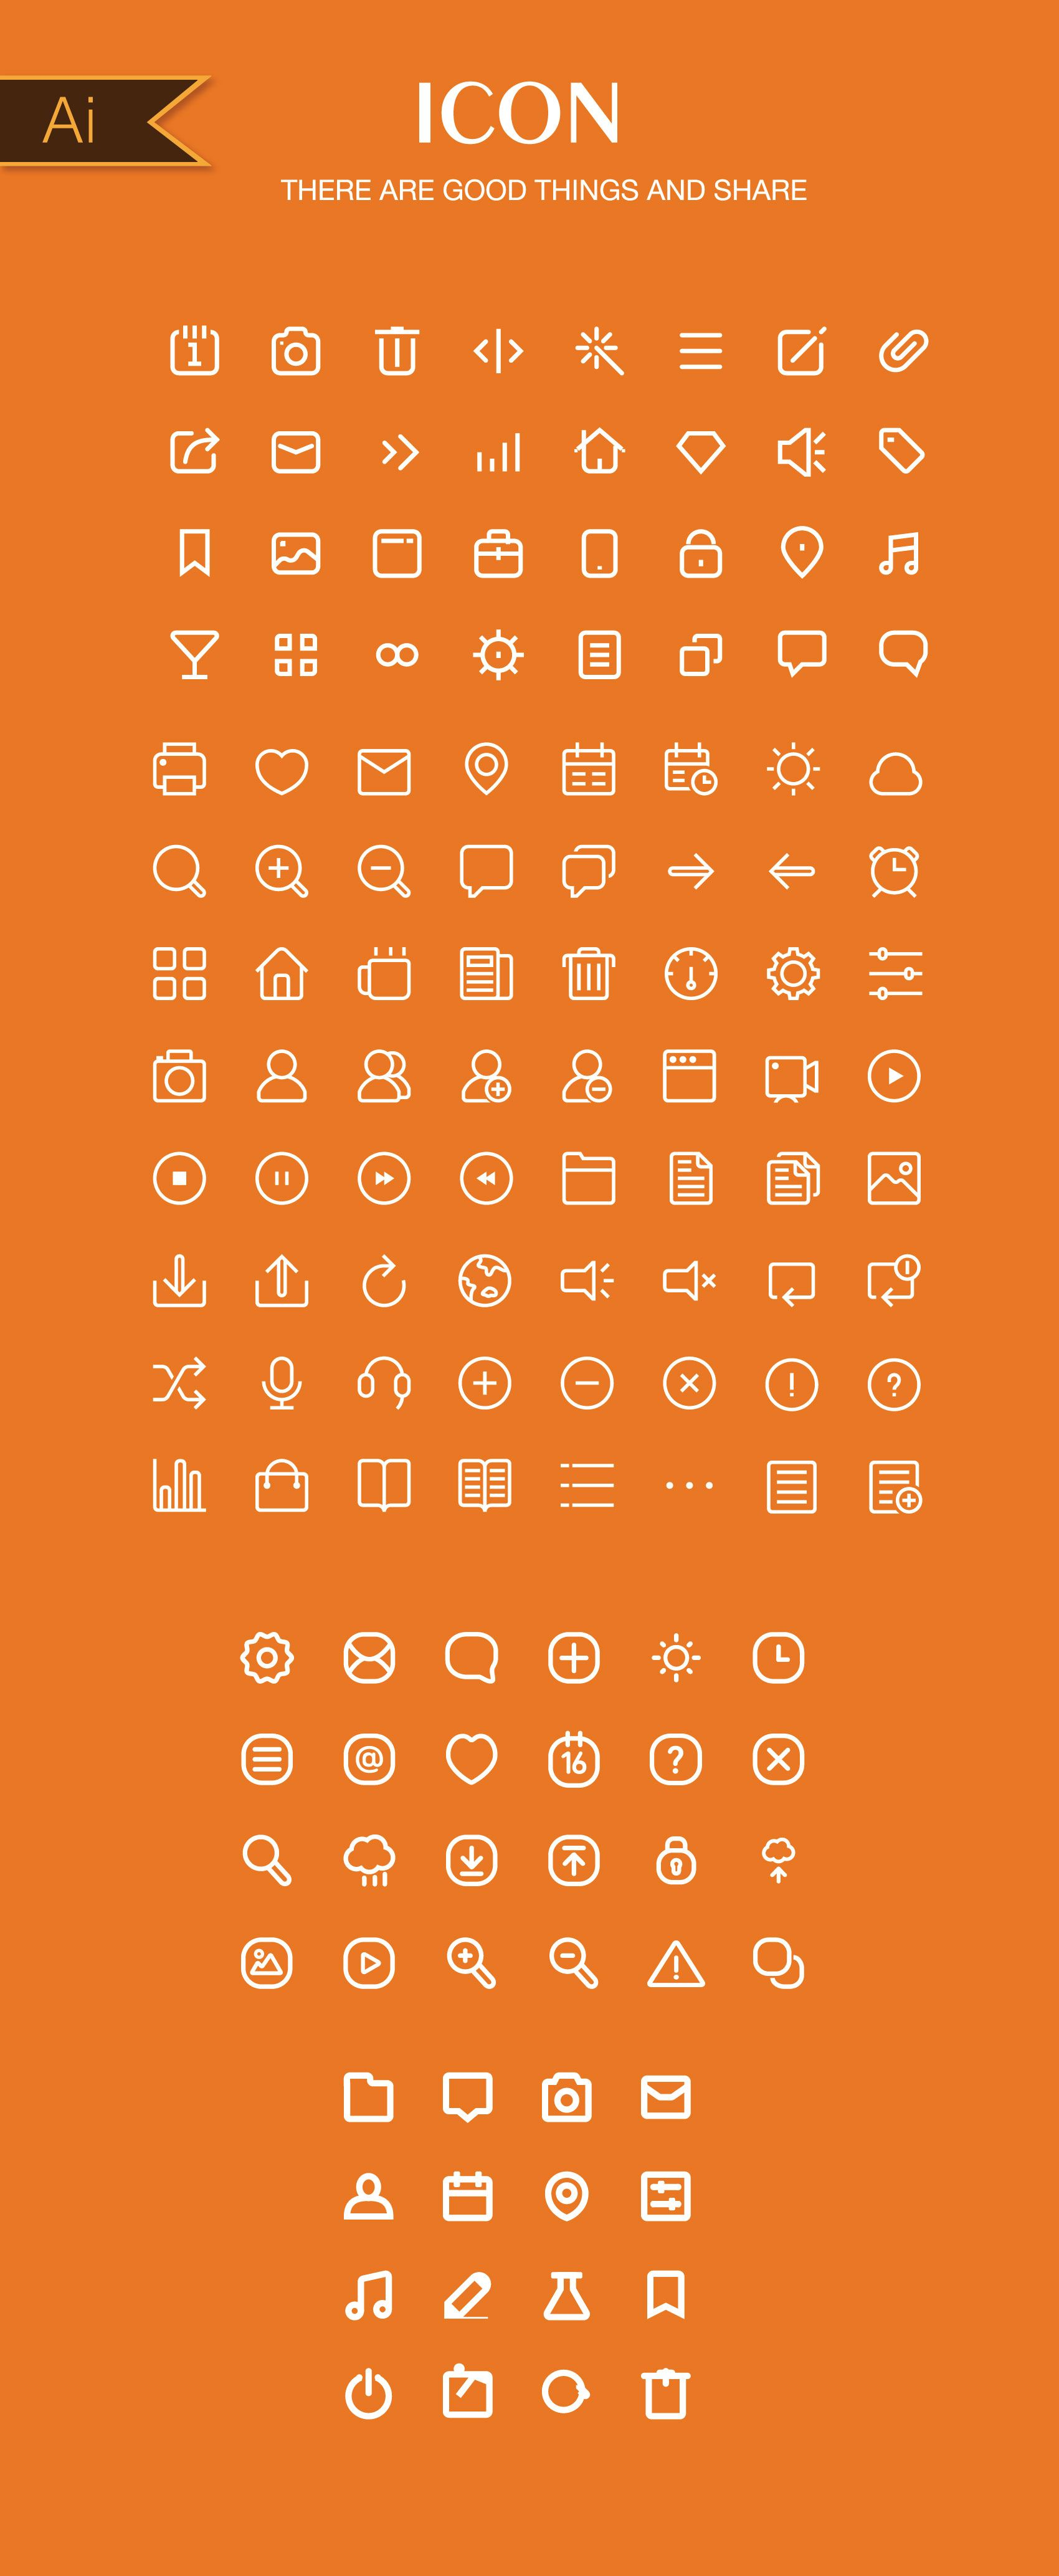 Mobile Phone Icon Vector (136 icons) (With images) Phone